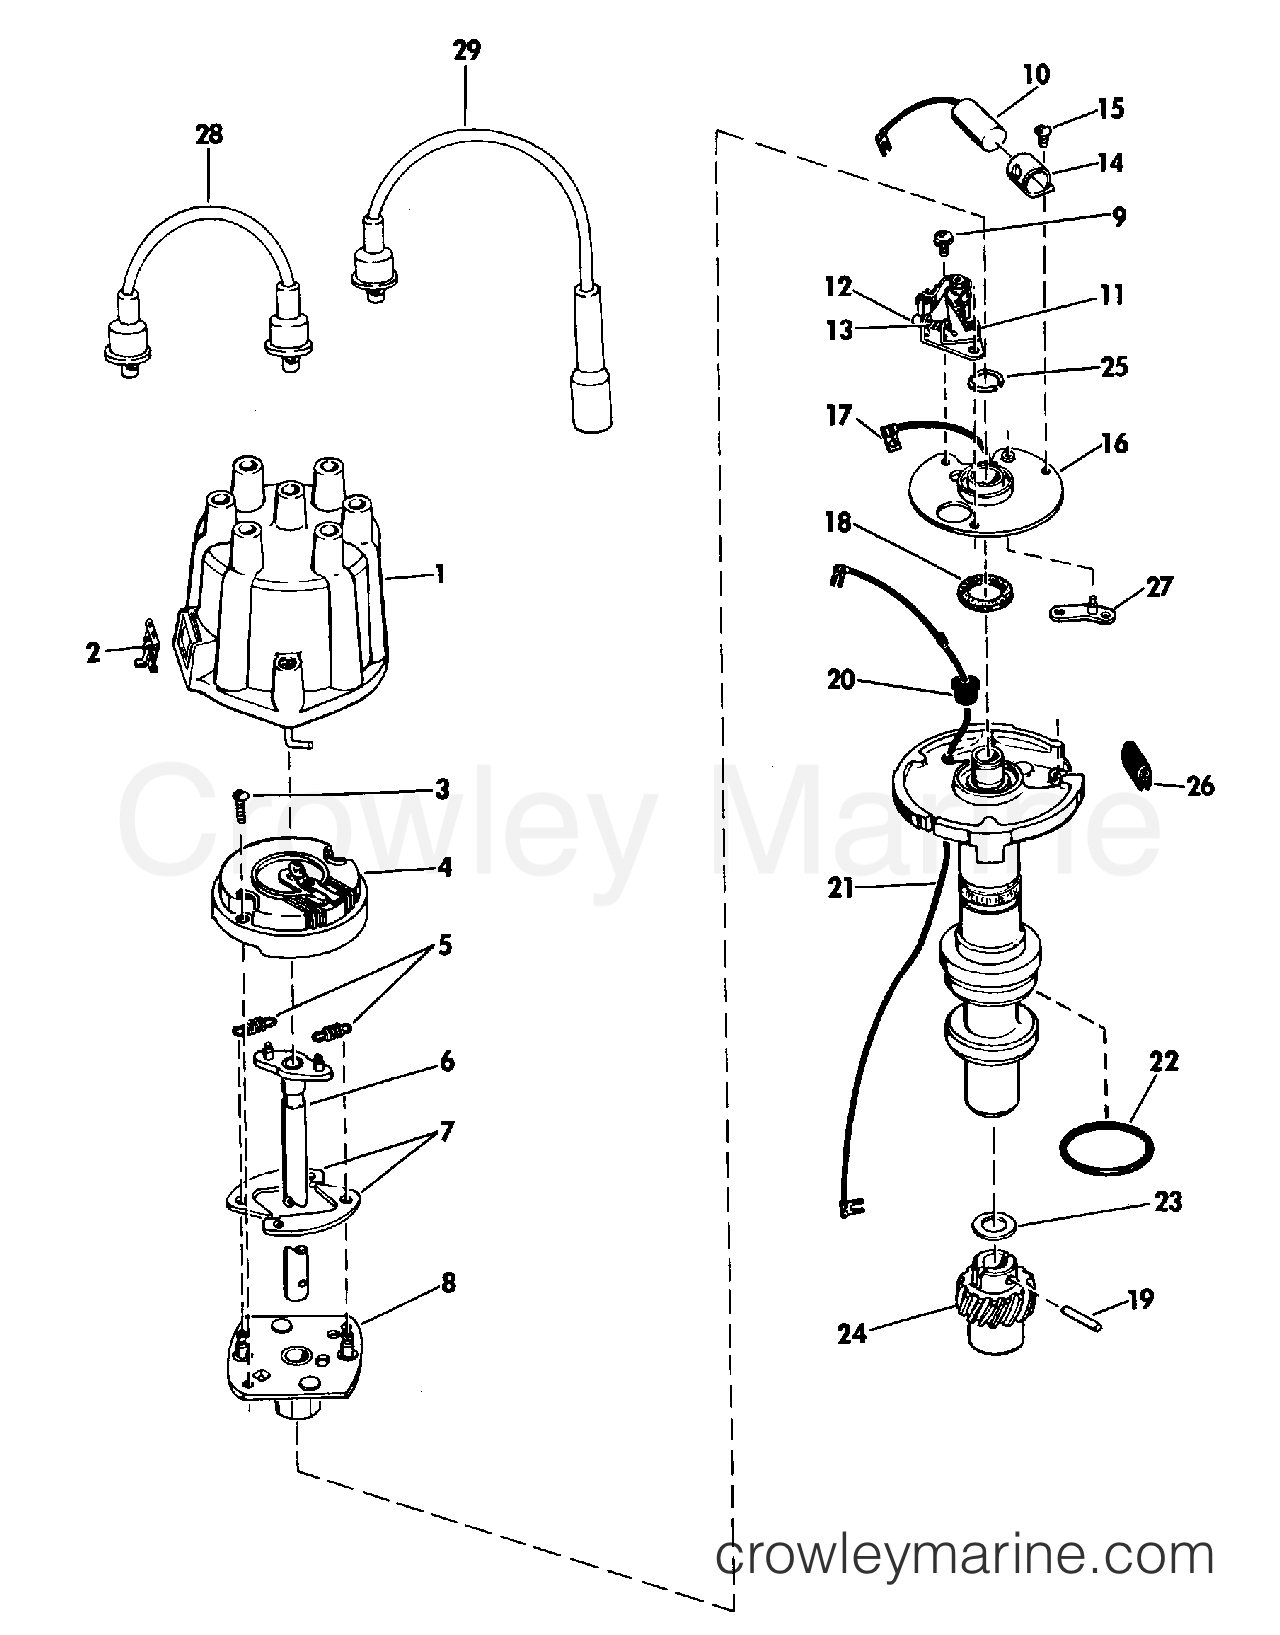 Delco Remy Distributor Diagram Detailed Schematics Wiring Group Model 1110376 1968 Omc Stern Drive Part Numbers